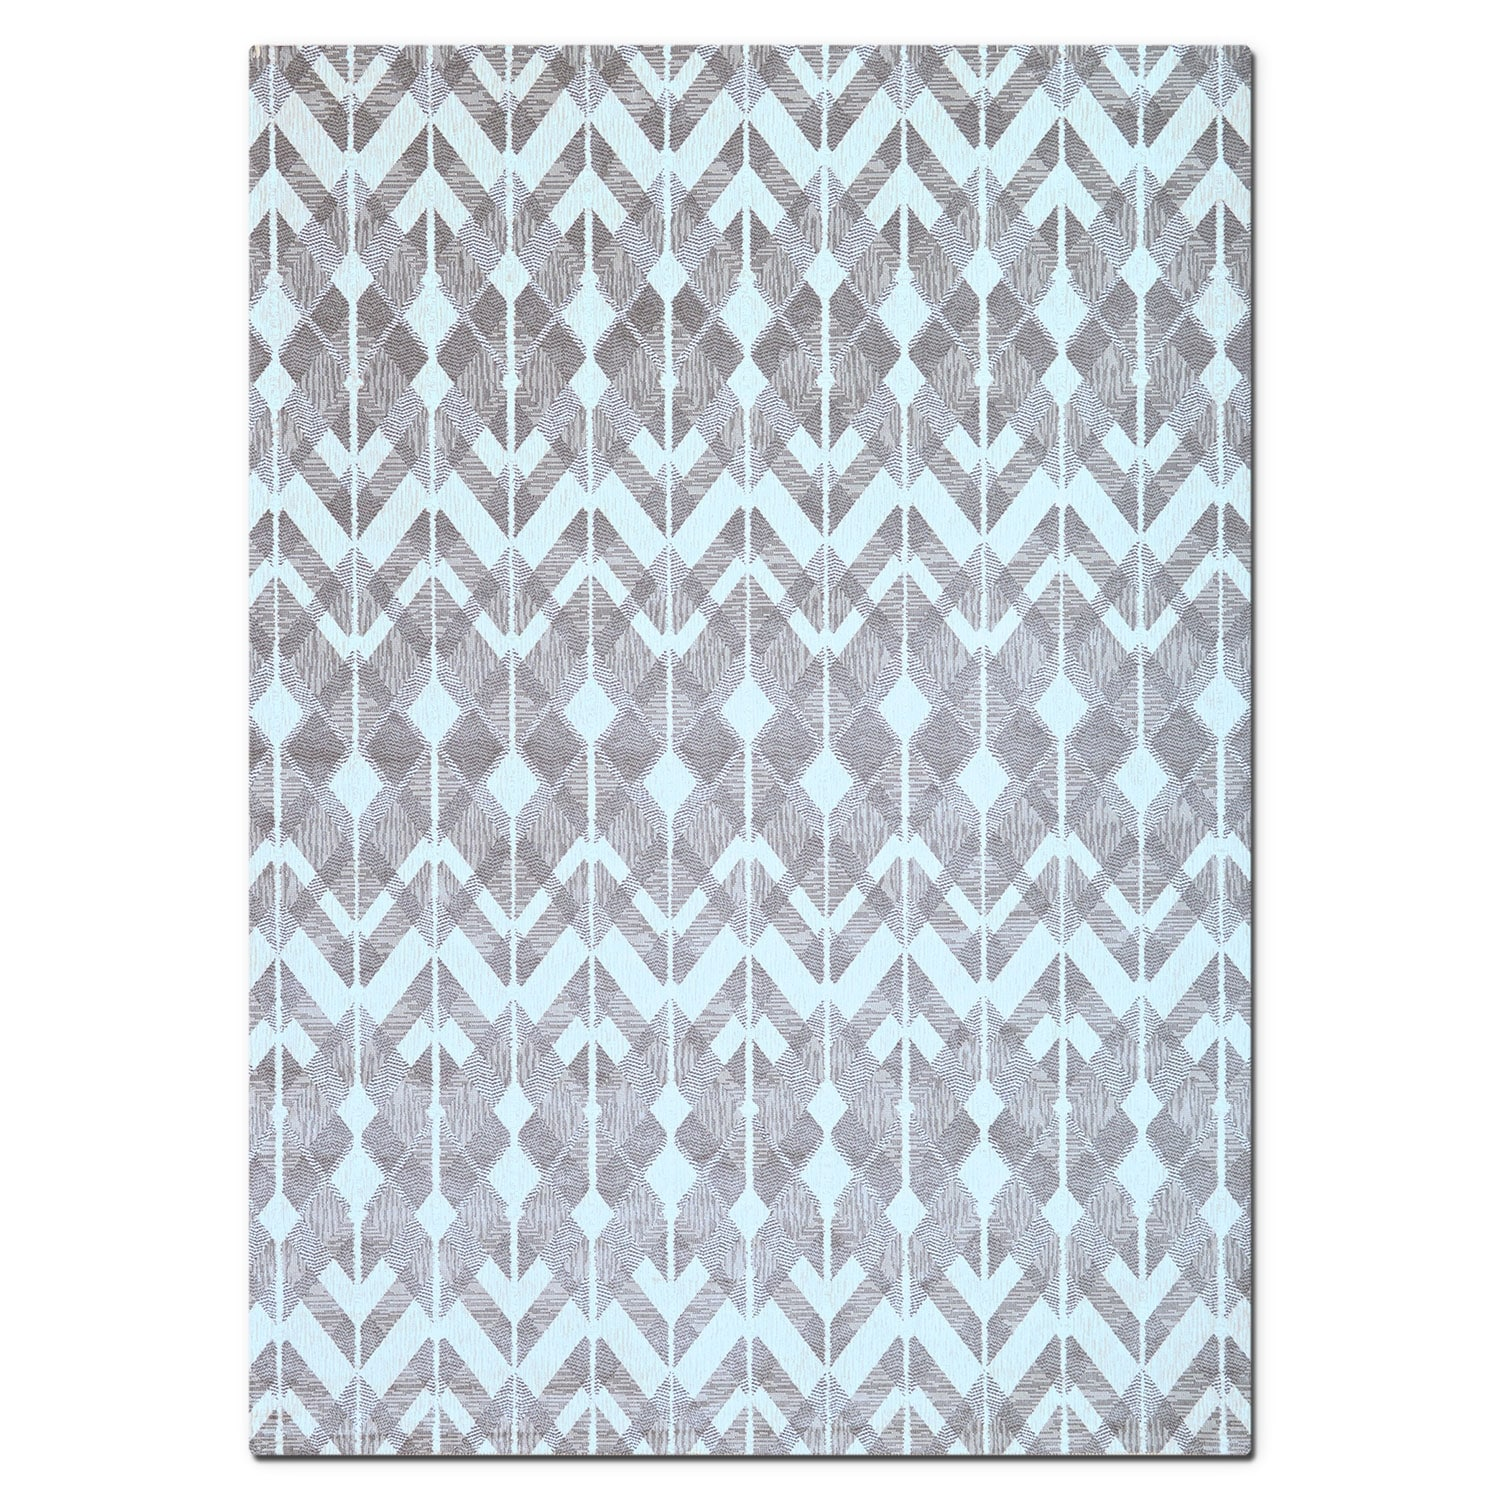 Rugs - Sonoma Gray Diamonds Area Rug (5' x 8')